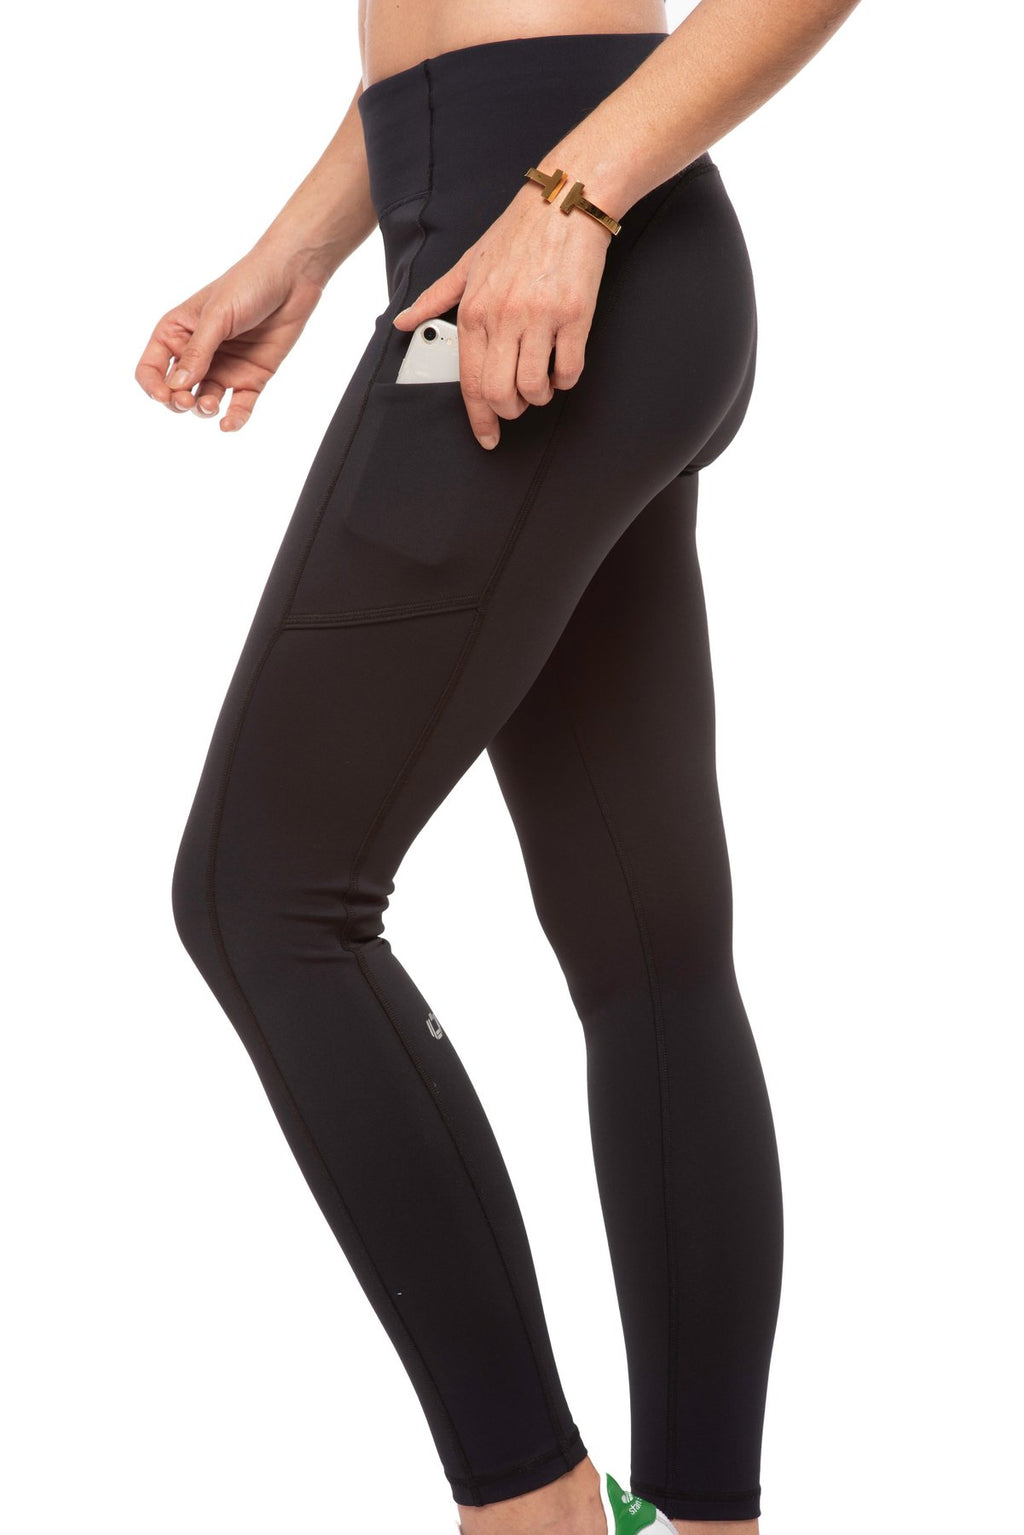 Ibkul Icifil  Performance Leggings- Black